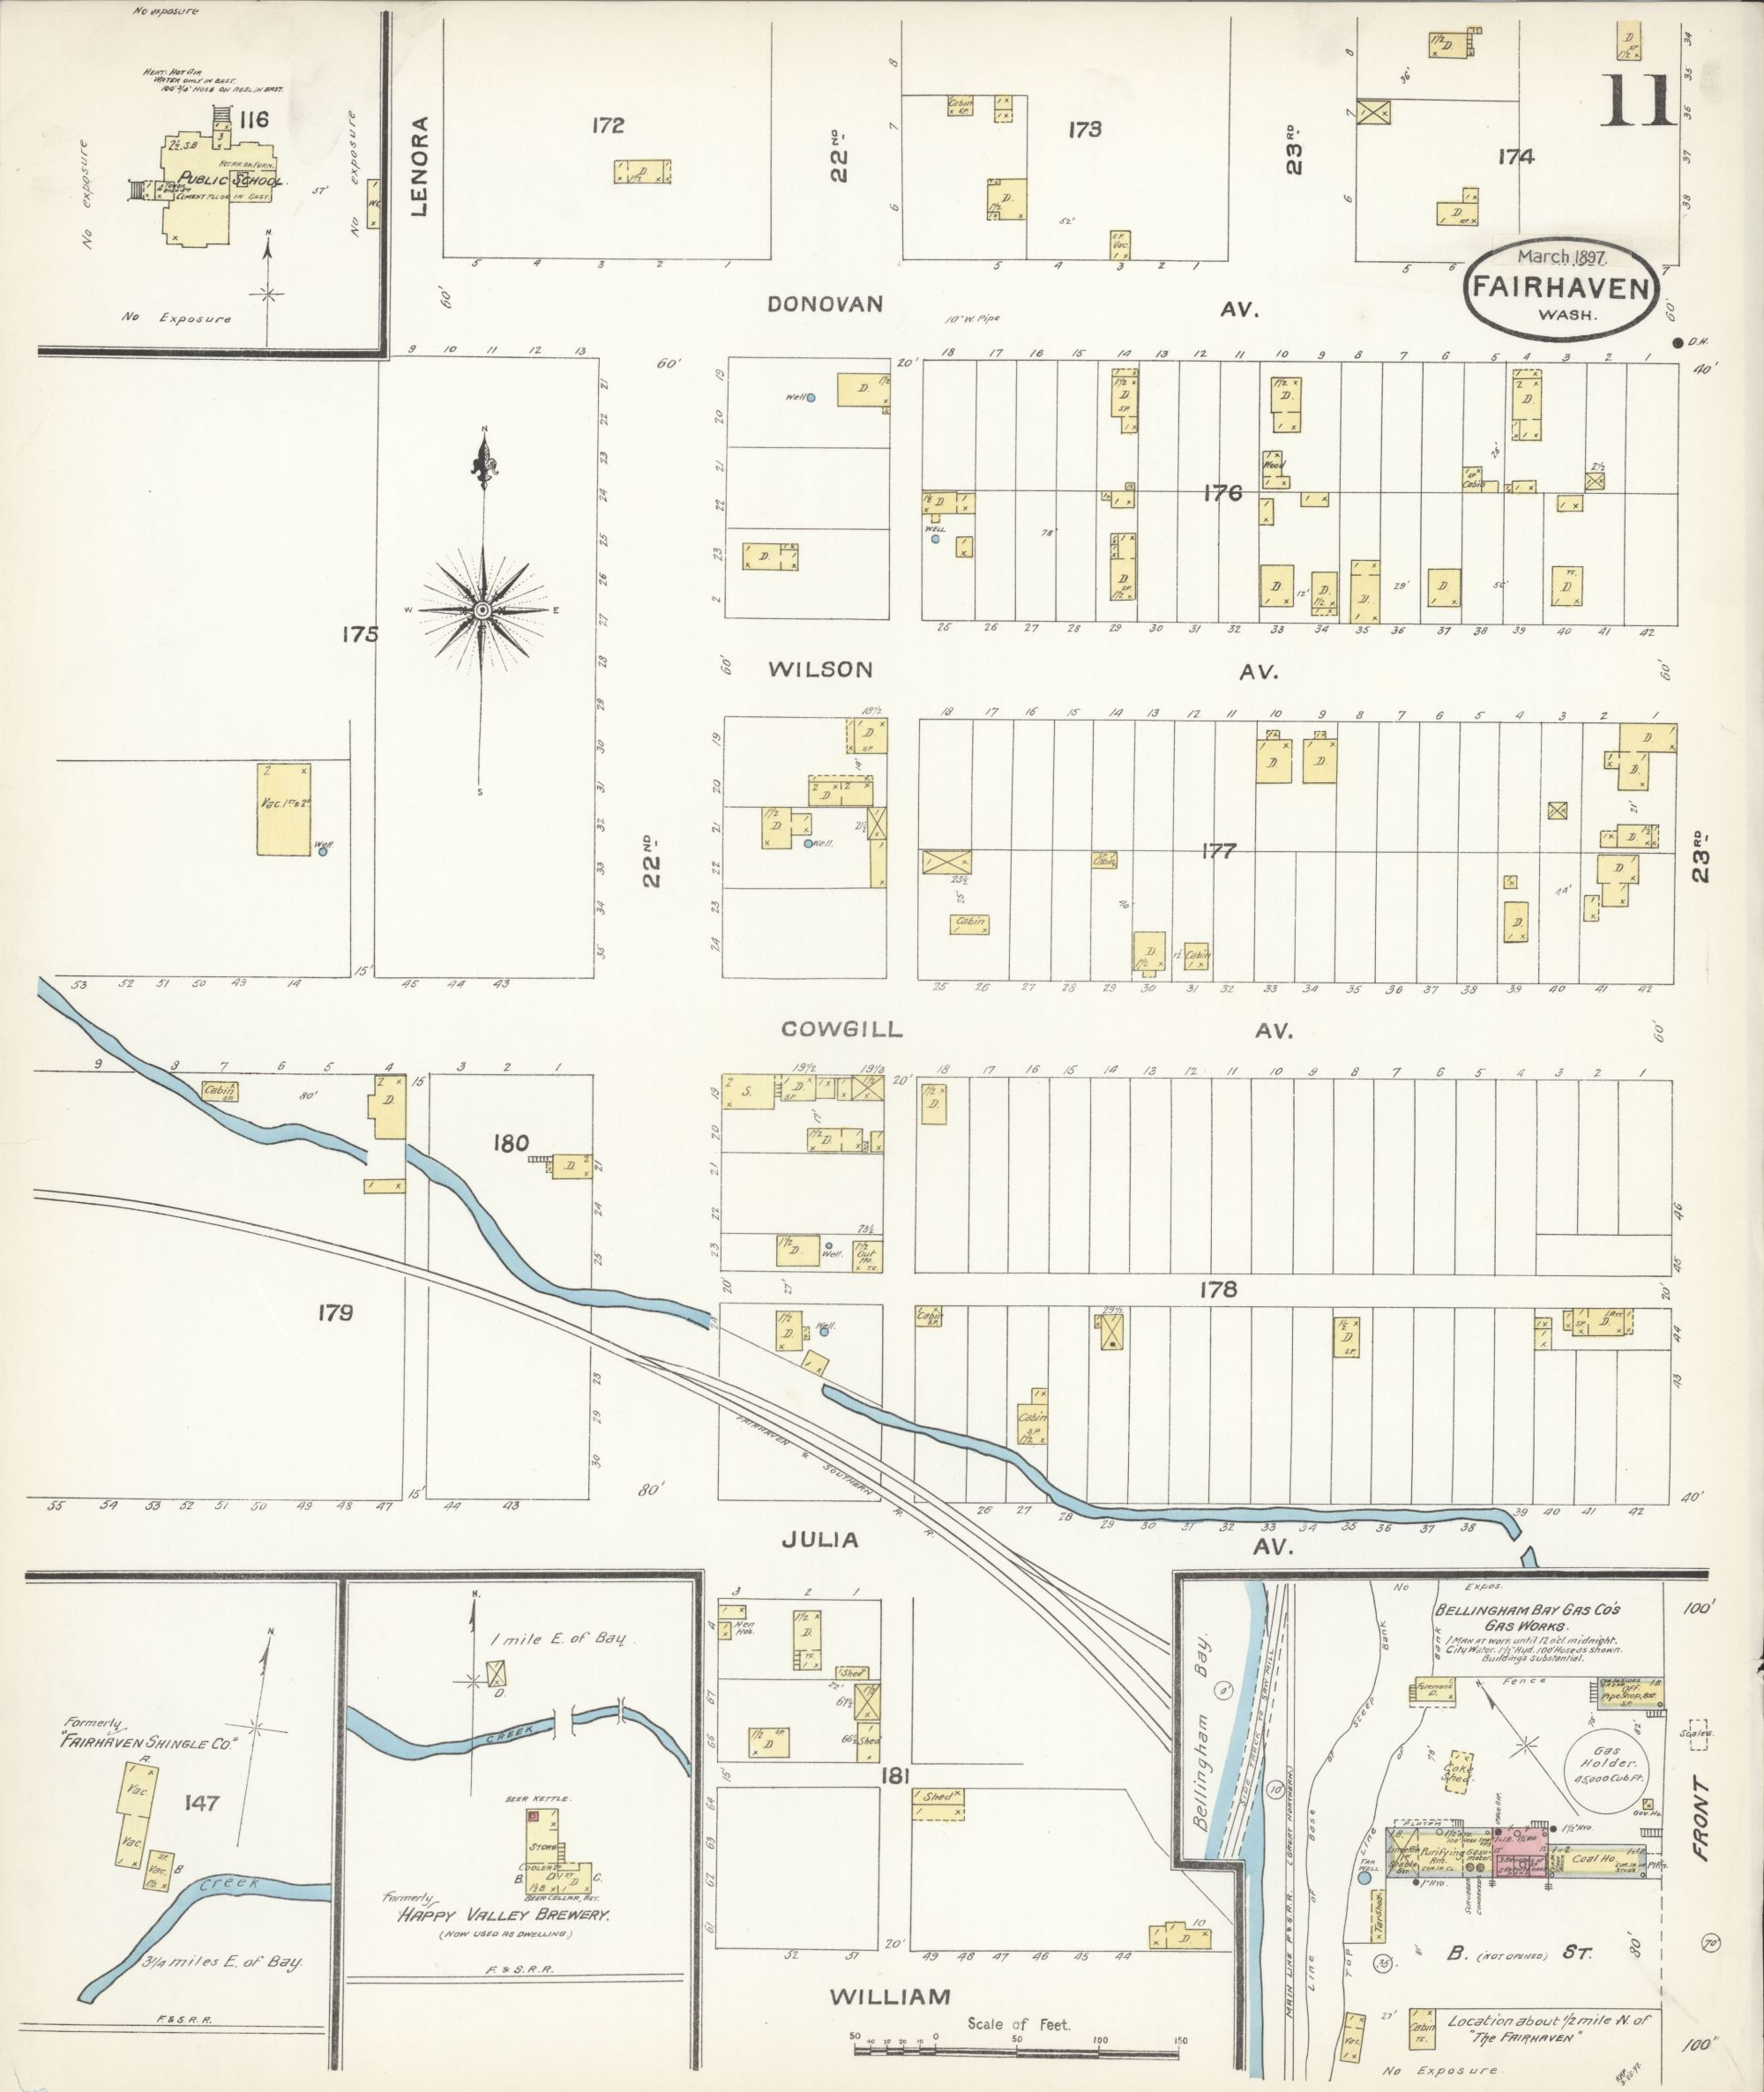 hight resolution of file sanborn fire insurance map from fairhaven see also bellingham sehome whatcom county washington loc sanborn09182 003 11 jpg